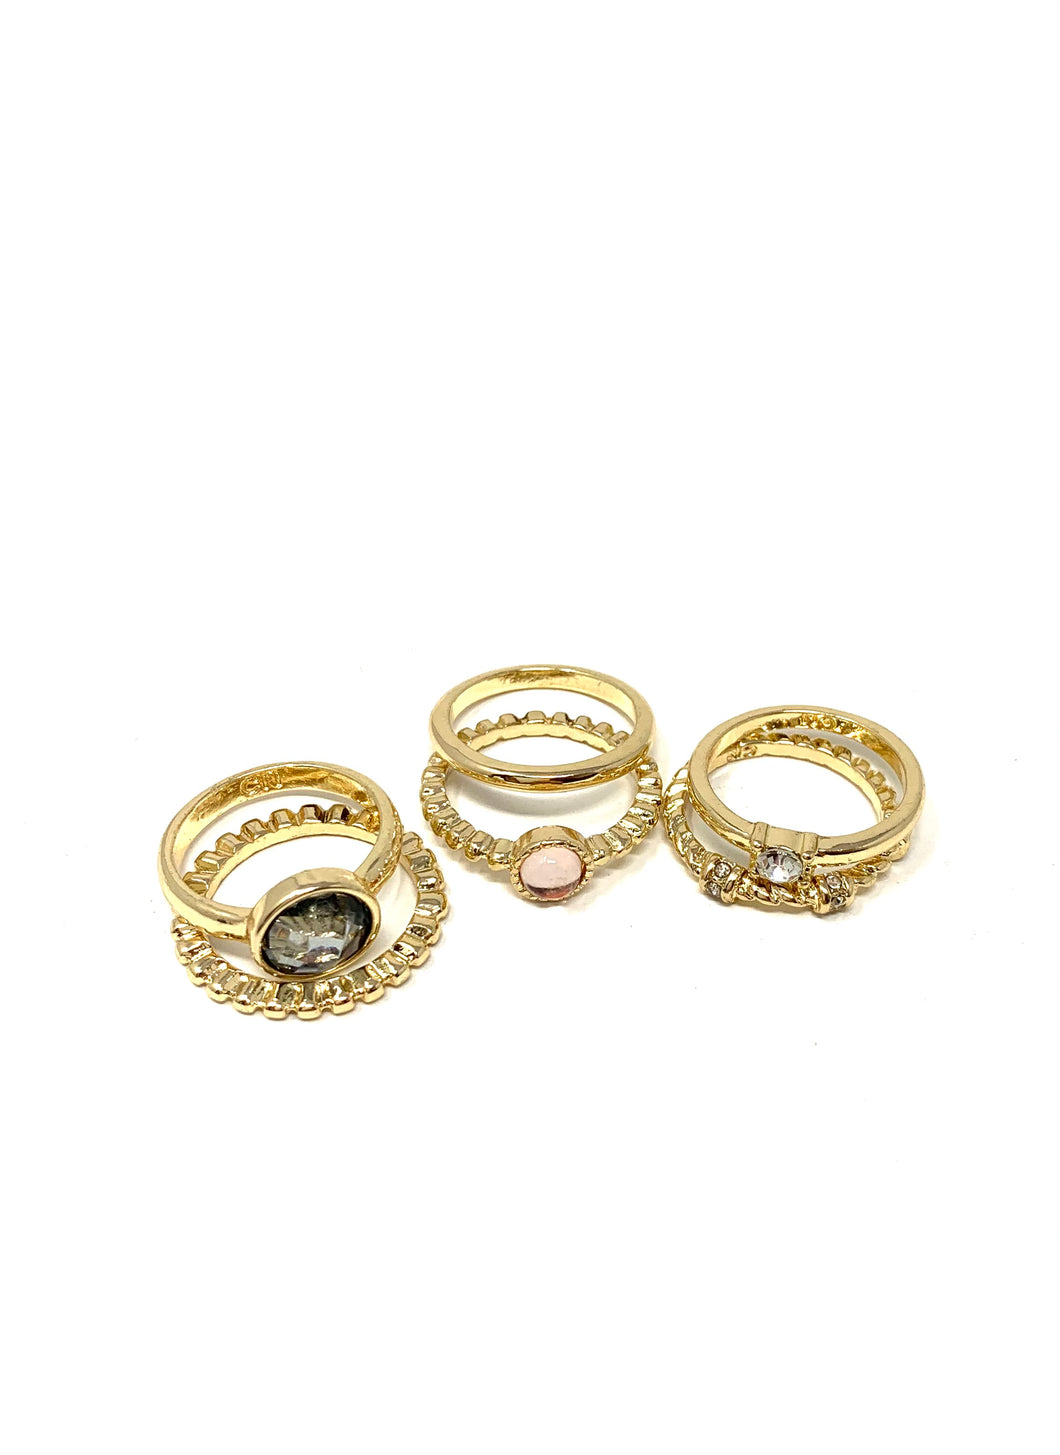 Crystal Ball Gold Tone Ring Multi Pack